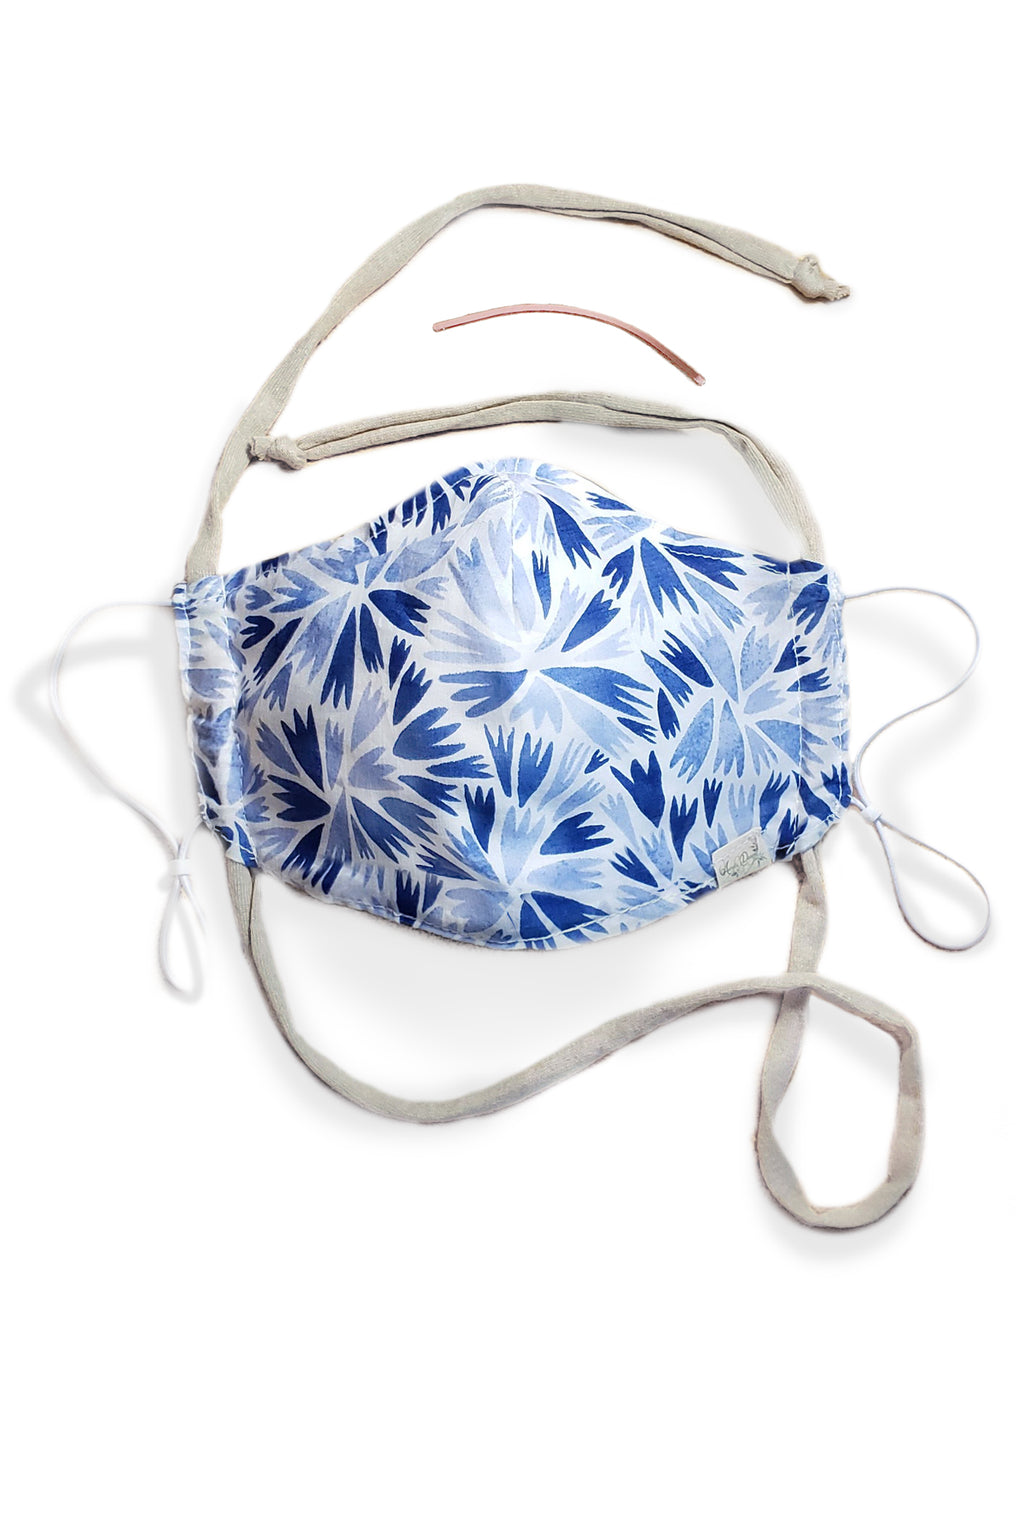 blue petal cornflower breathable GOTS certified Organic Cotton cloth face mask with nose wire head tie by Arcadia Designs LLC handmade  made in USA